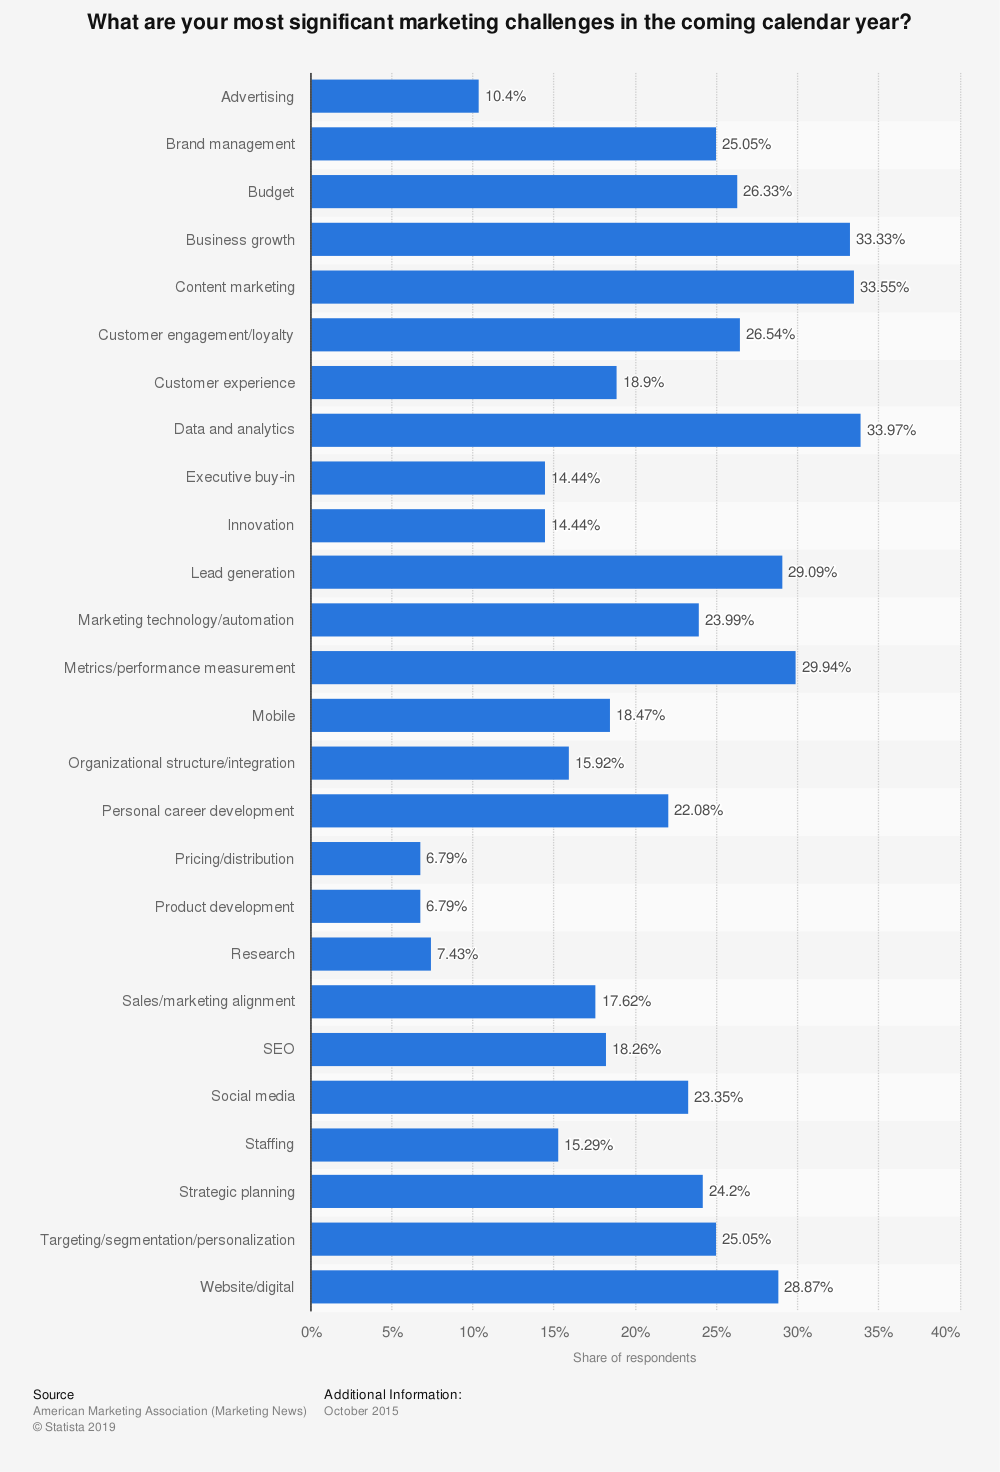 Statistic: What are your most significant marketing challenges in the coming calendar year? | Statista